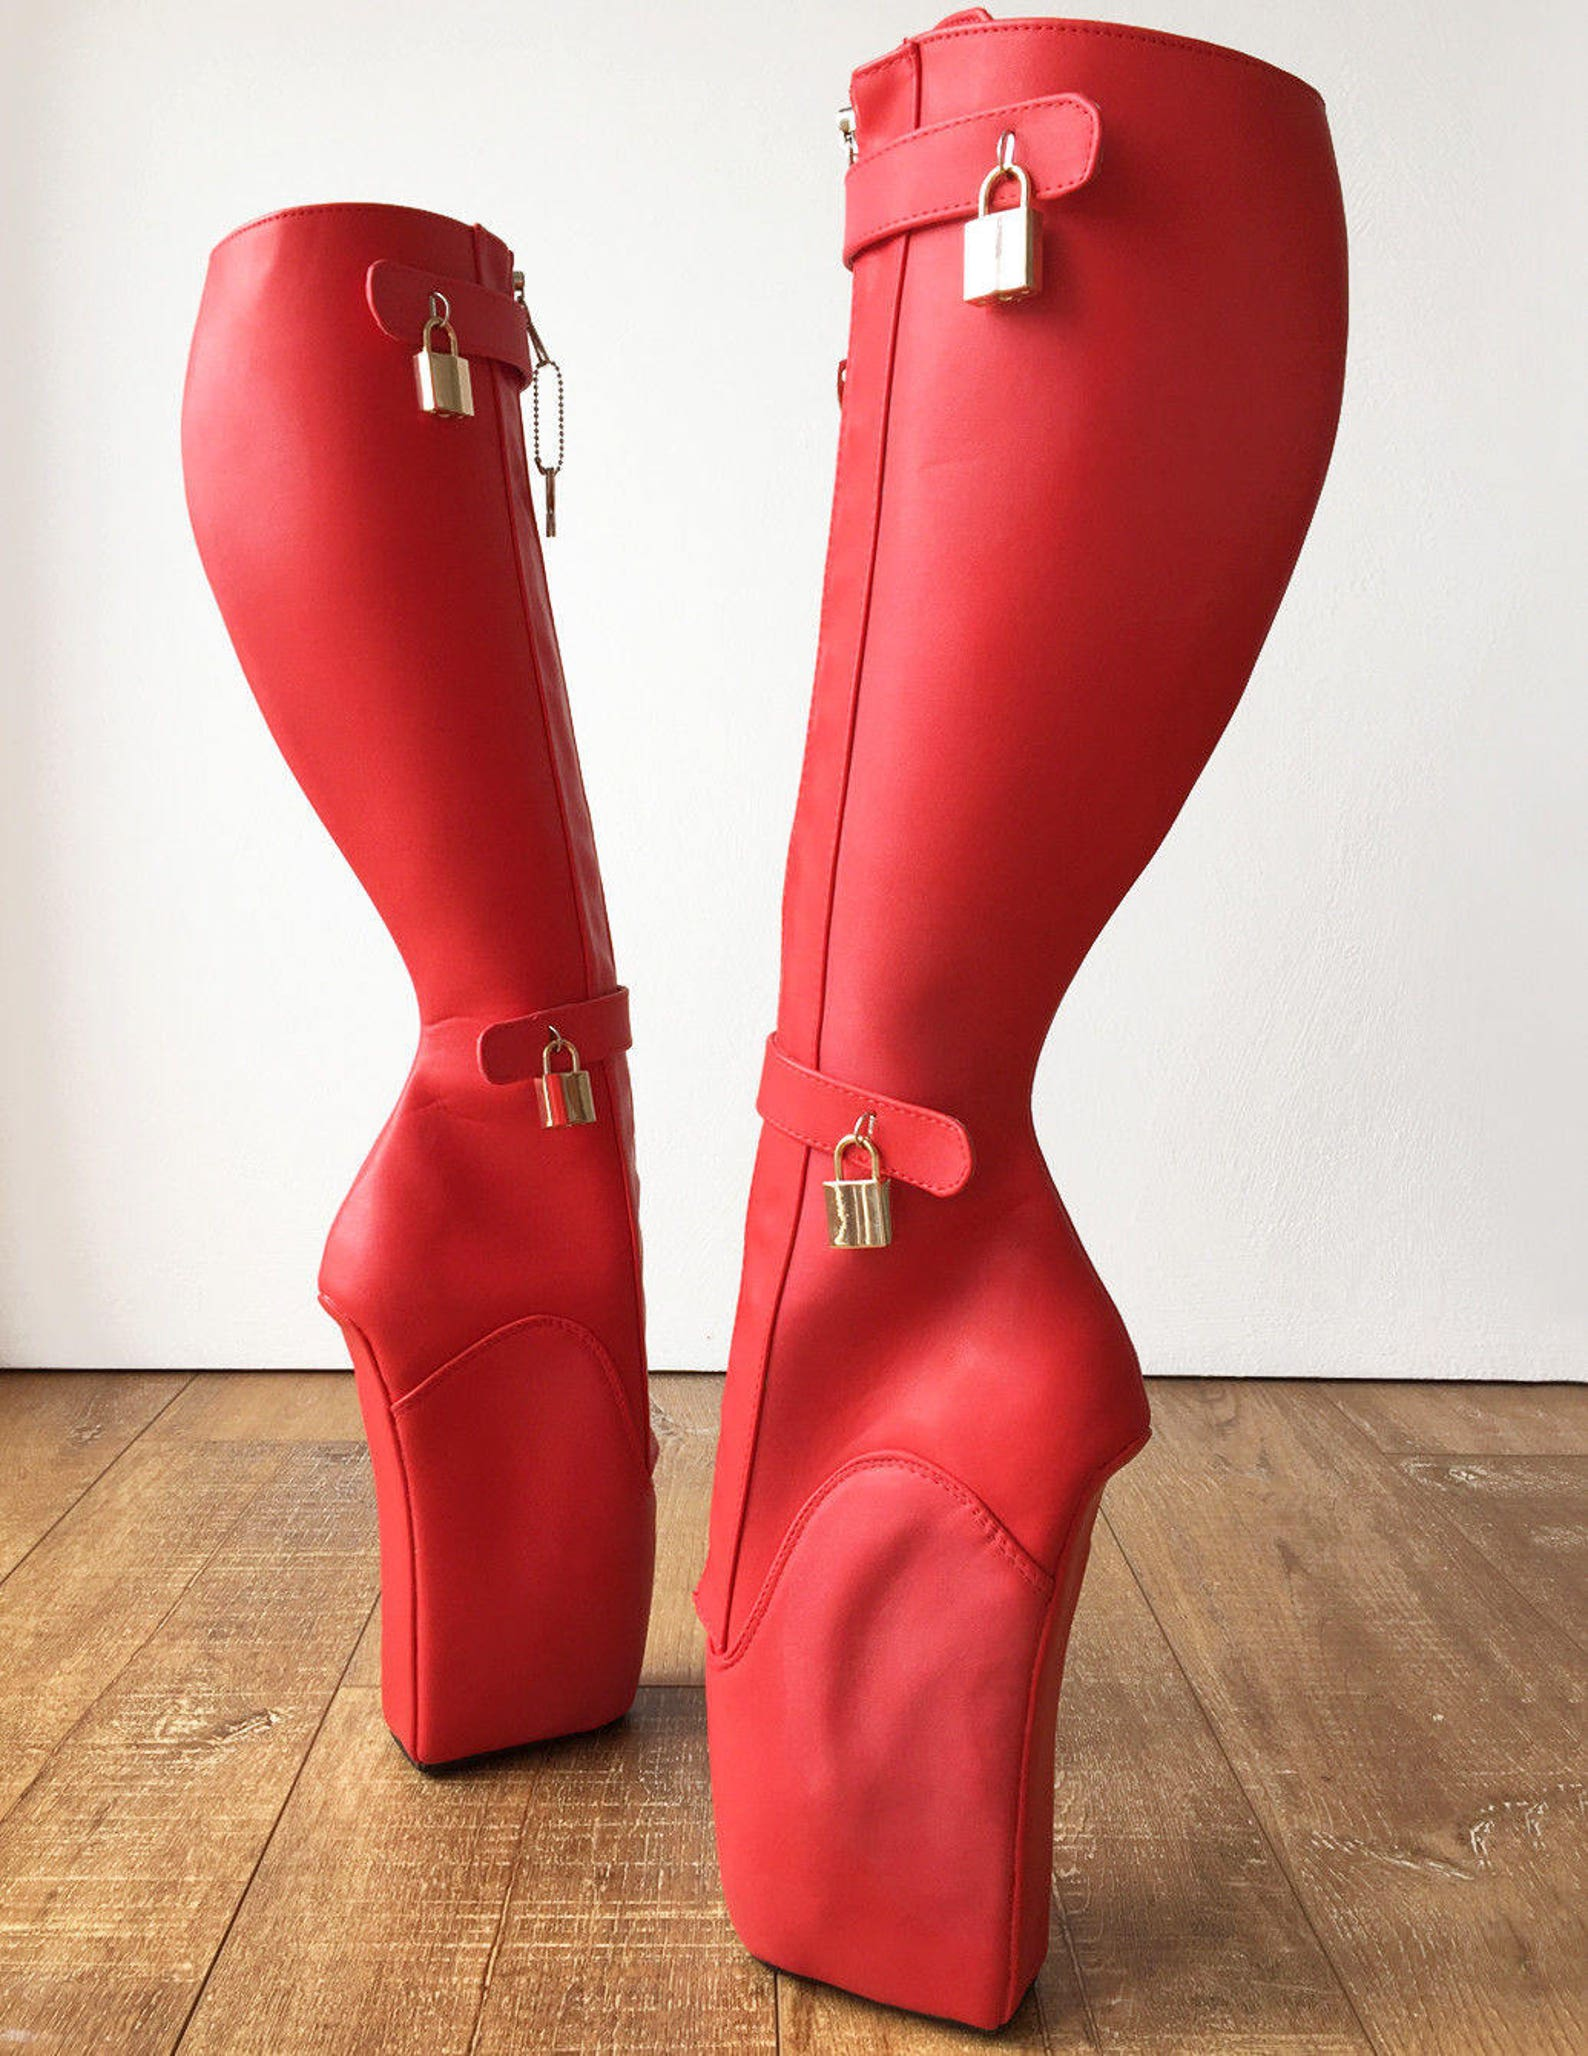 rtbu 6 keys locking zip beginner ballet wedge boots fetish dominatrix red matte